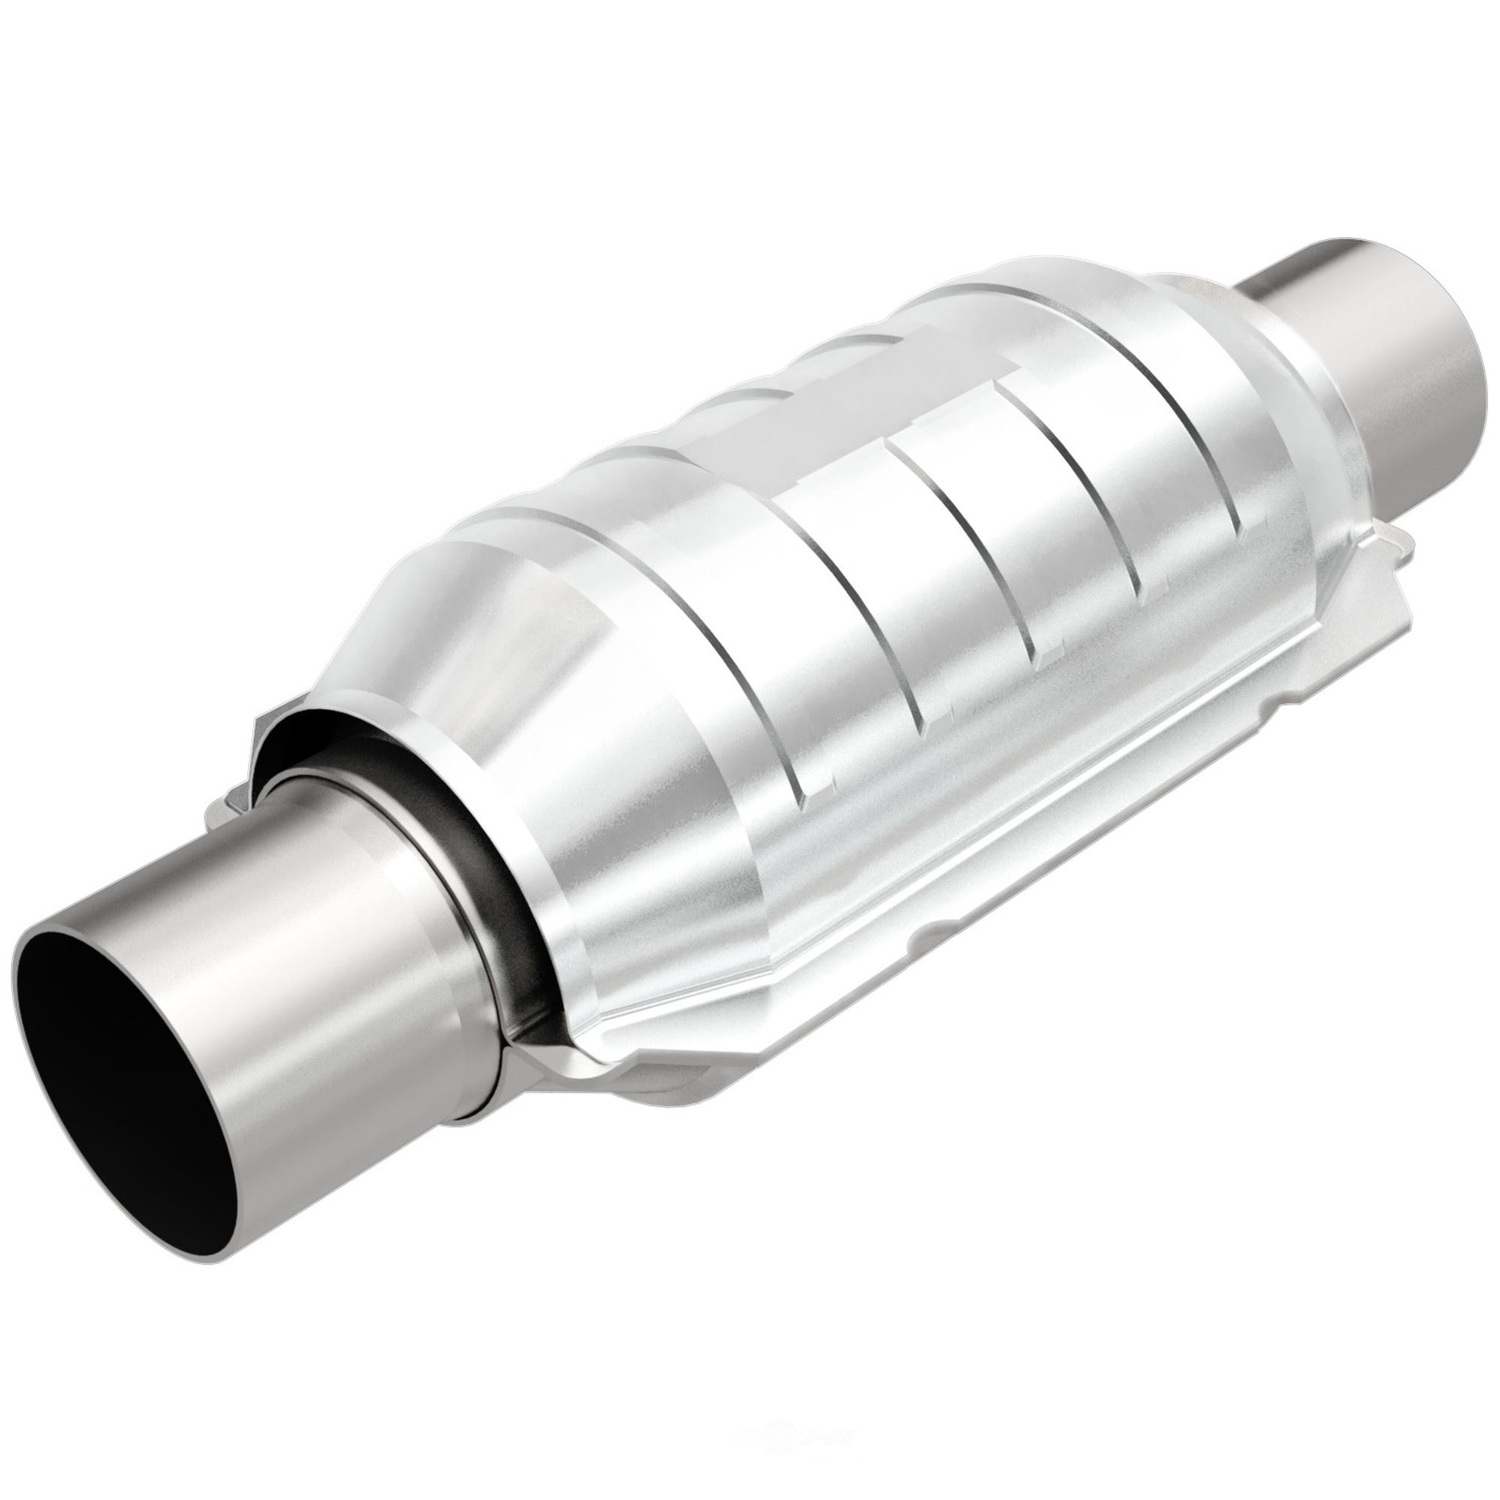 BREXHAUST 49 STATE CONVERTERS - BRExhaust Federal Universal Premium Load OBDII Catalytic Converter (Rear) - BSF 095-2013